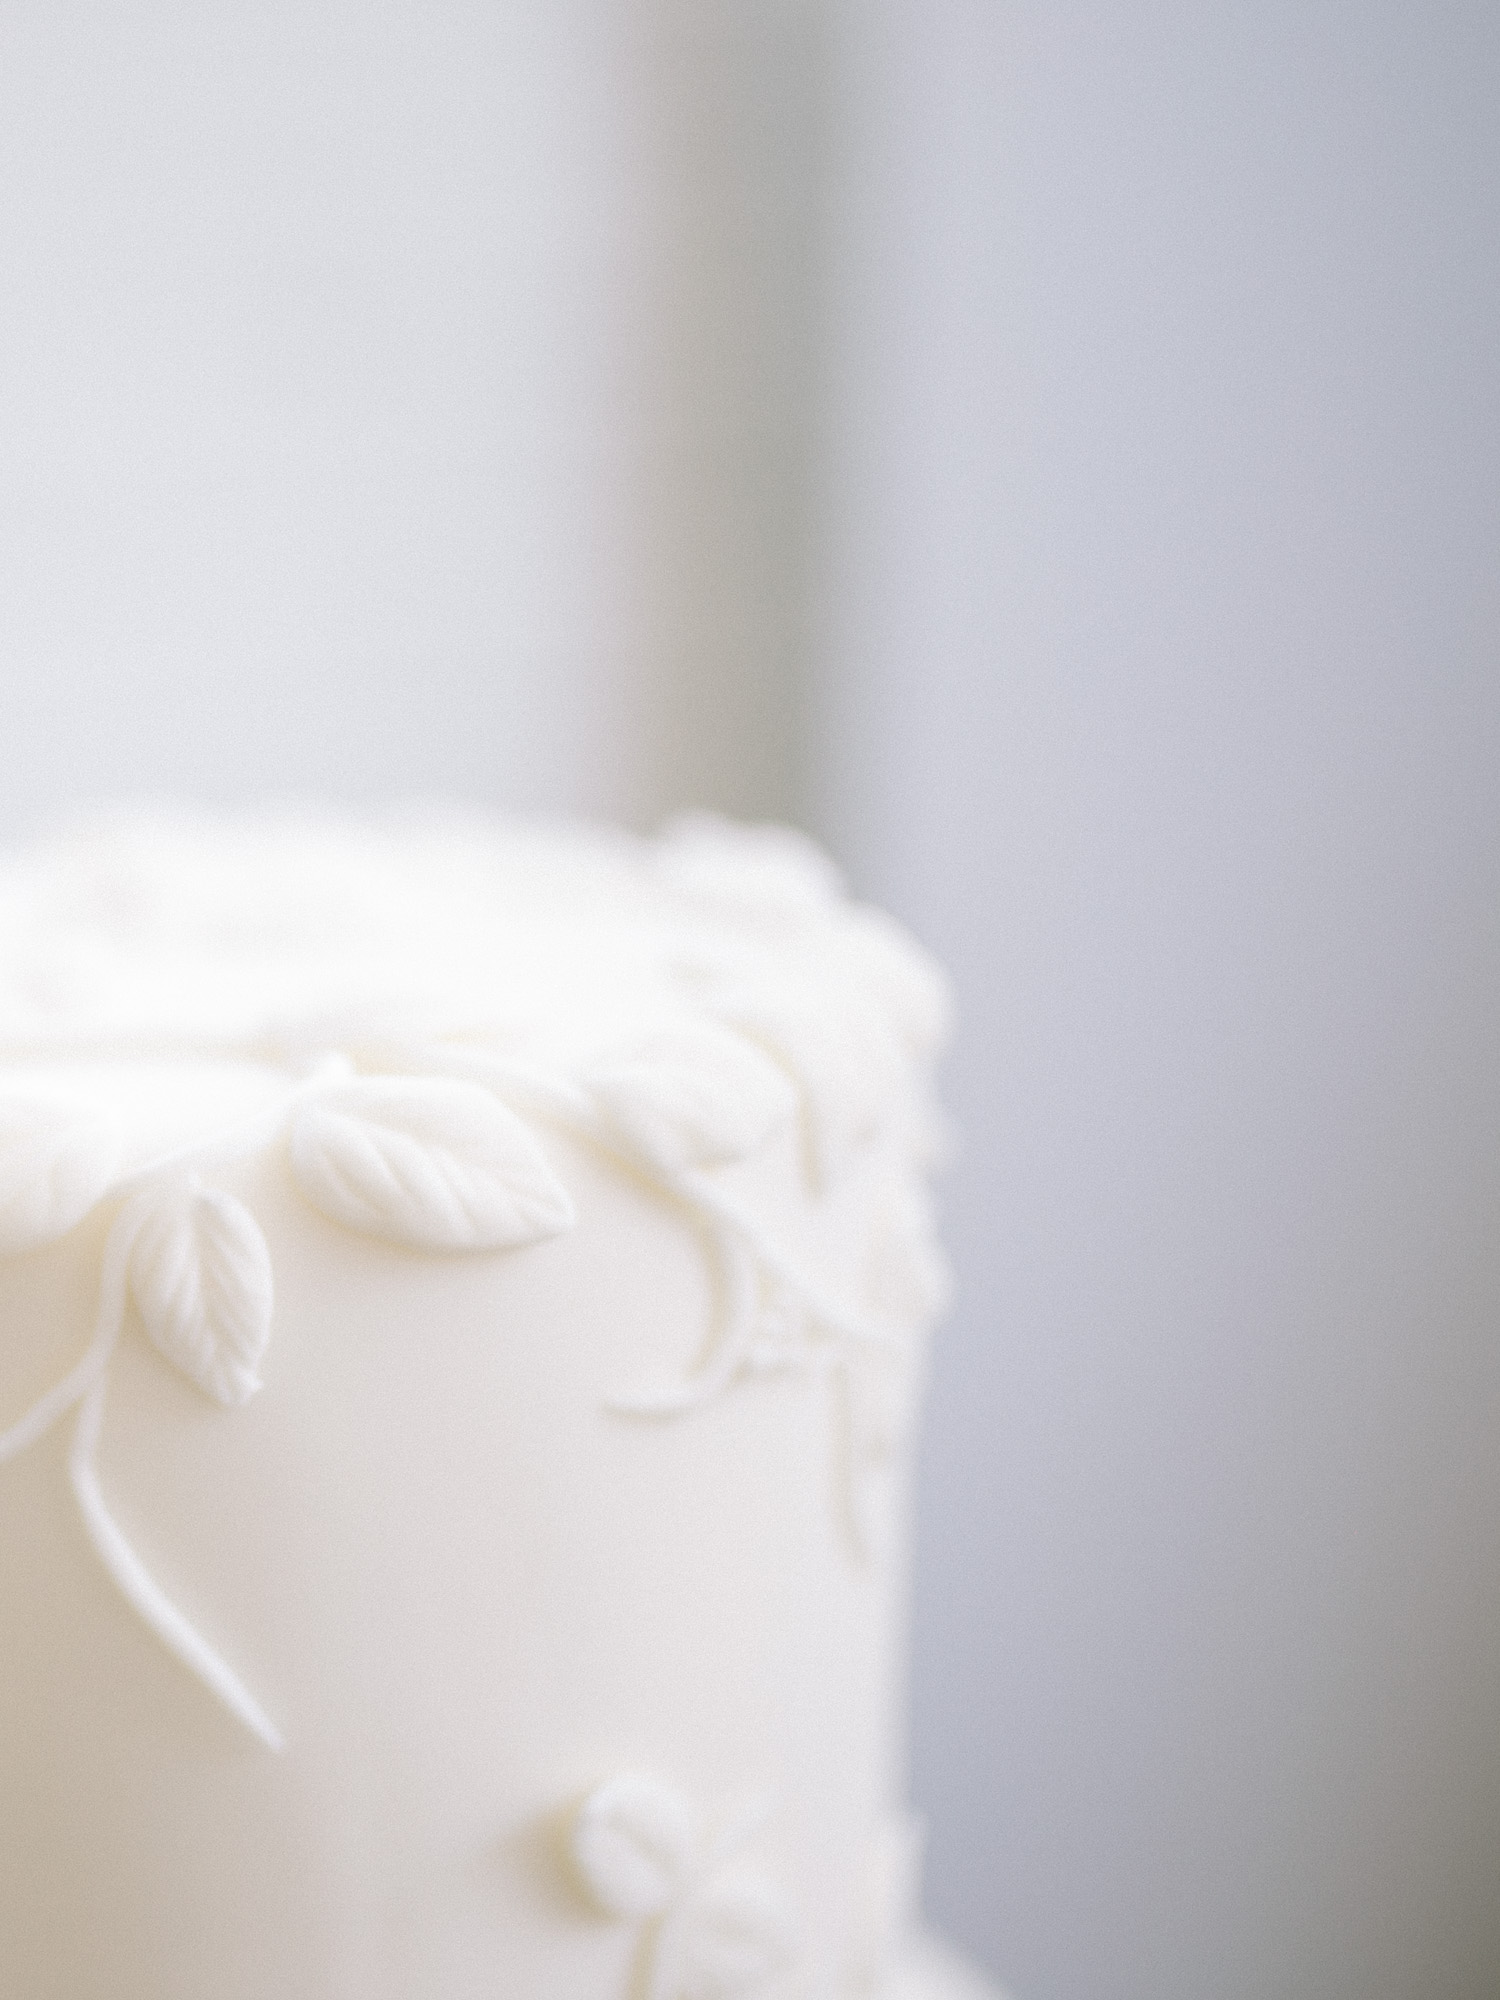 Vines and leaves sculpted in fondant on a white wedding cake are shown in detail